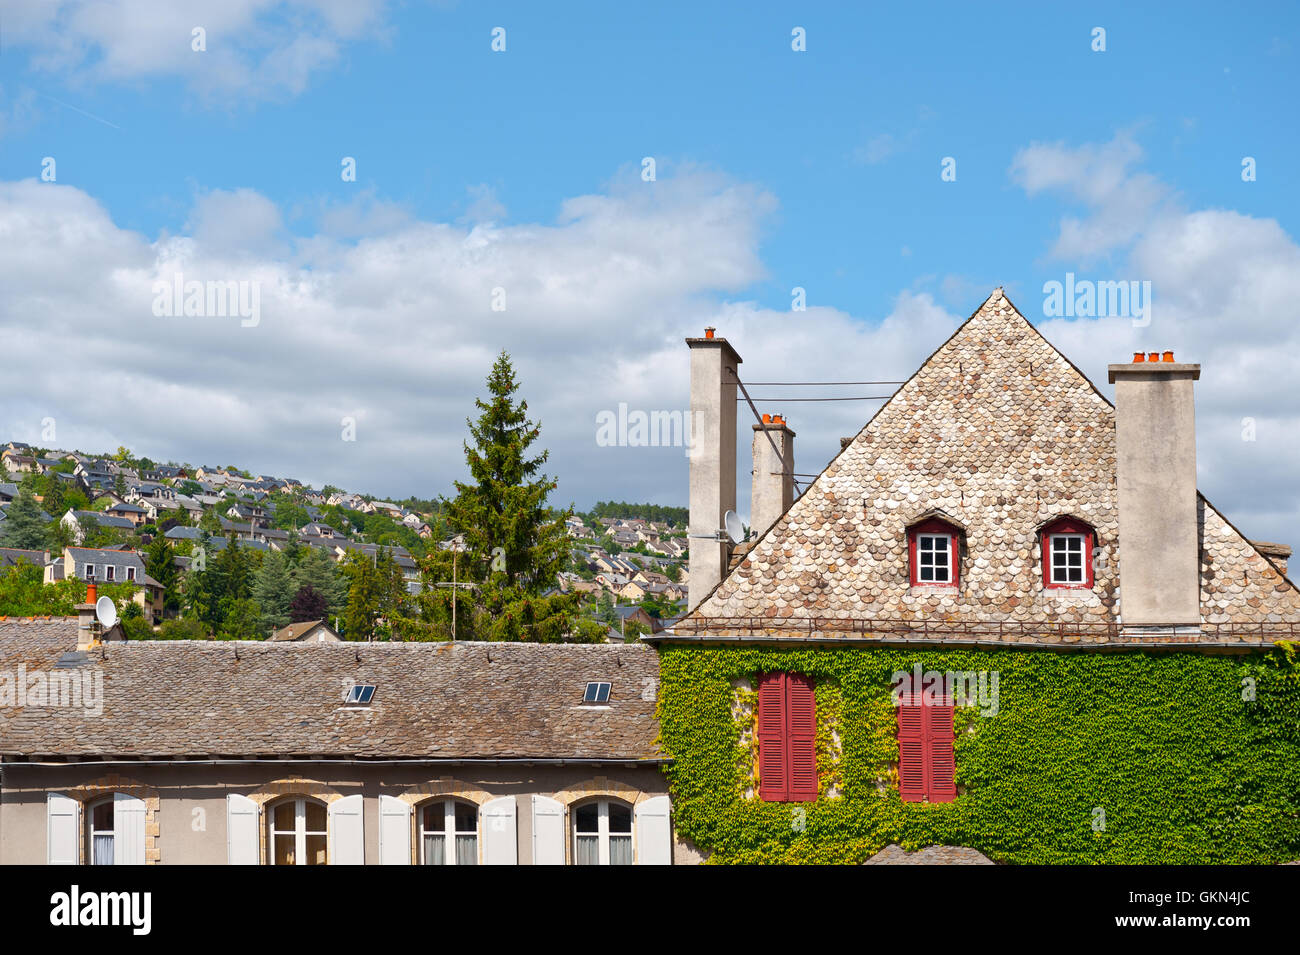 Windows - Stock Image